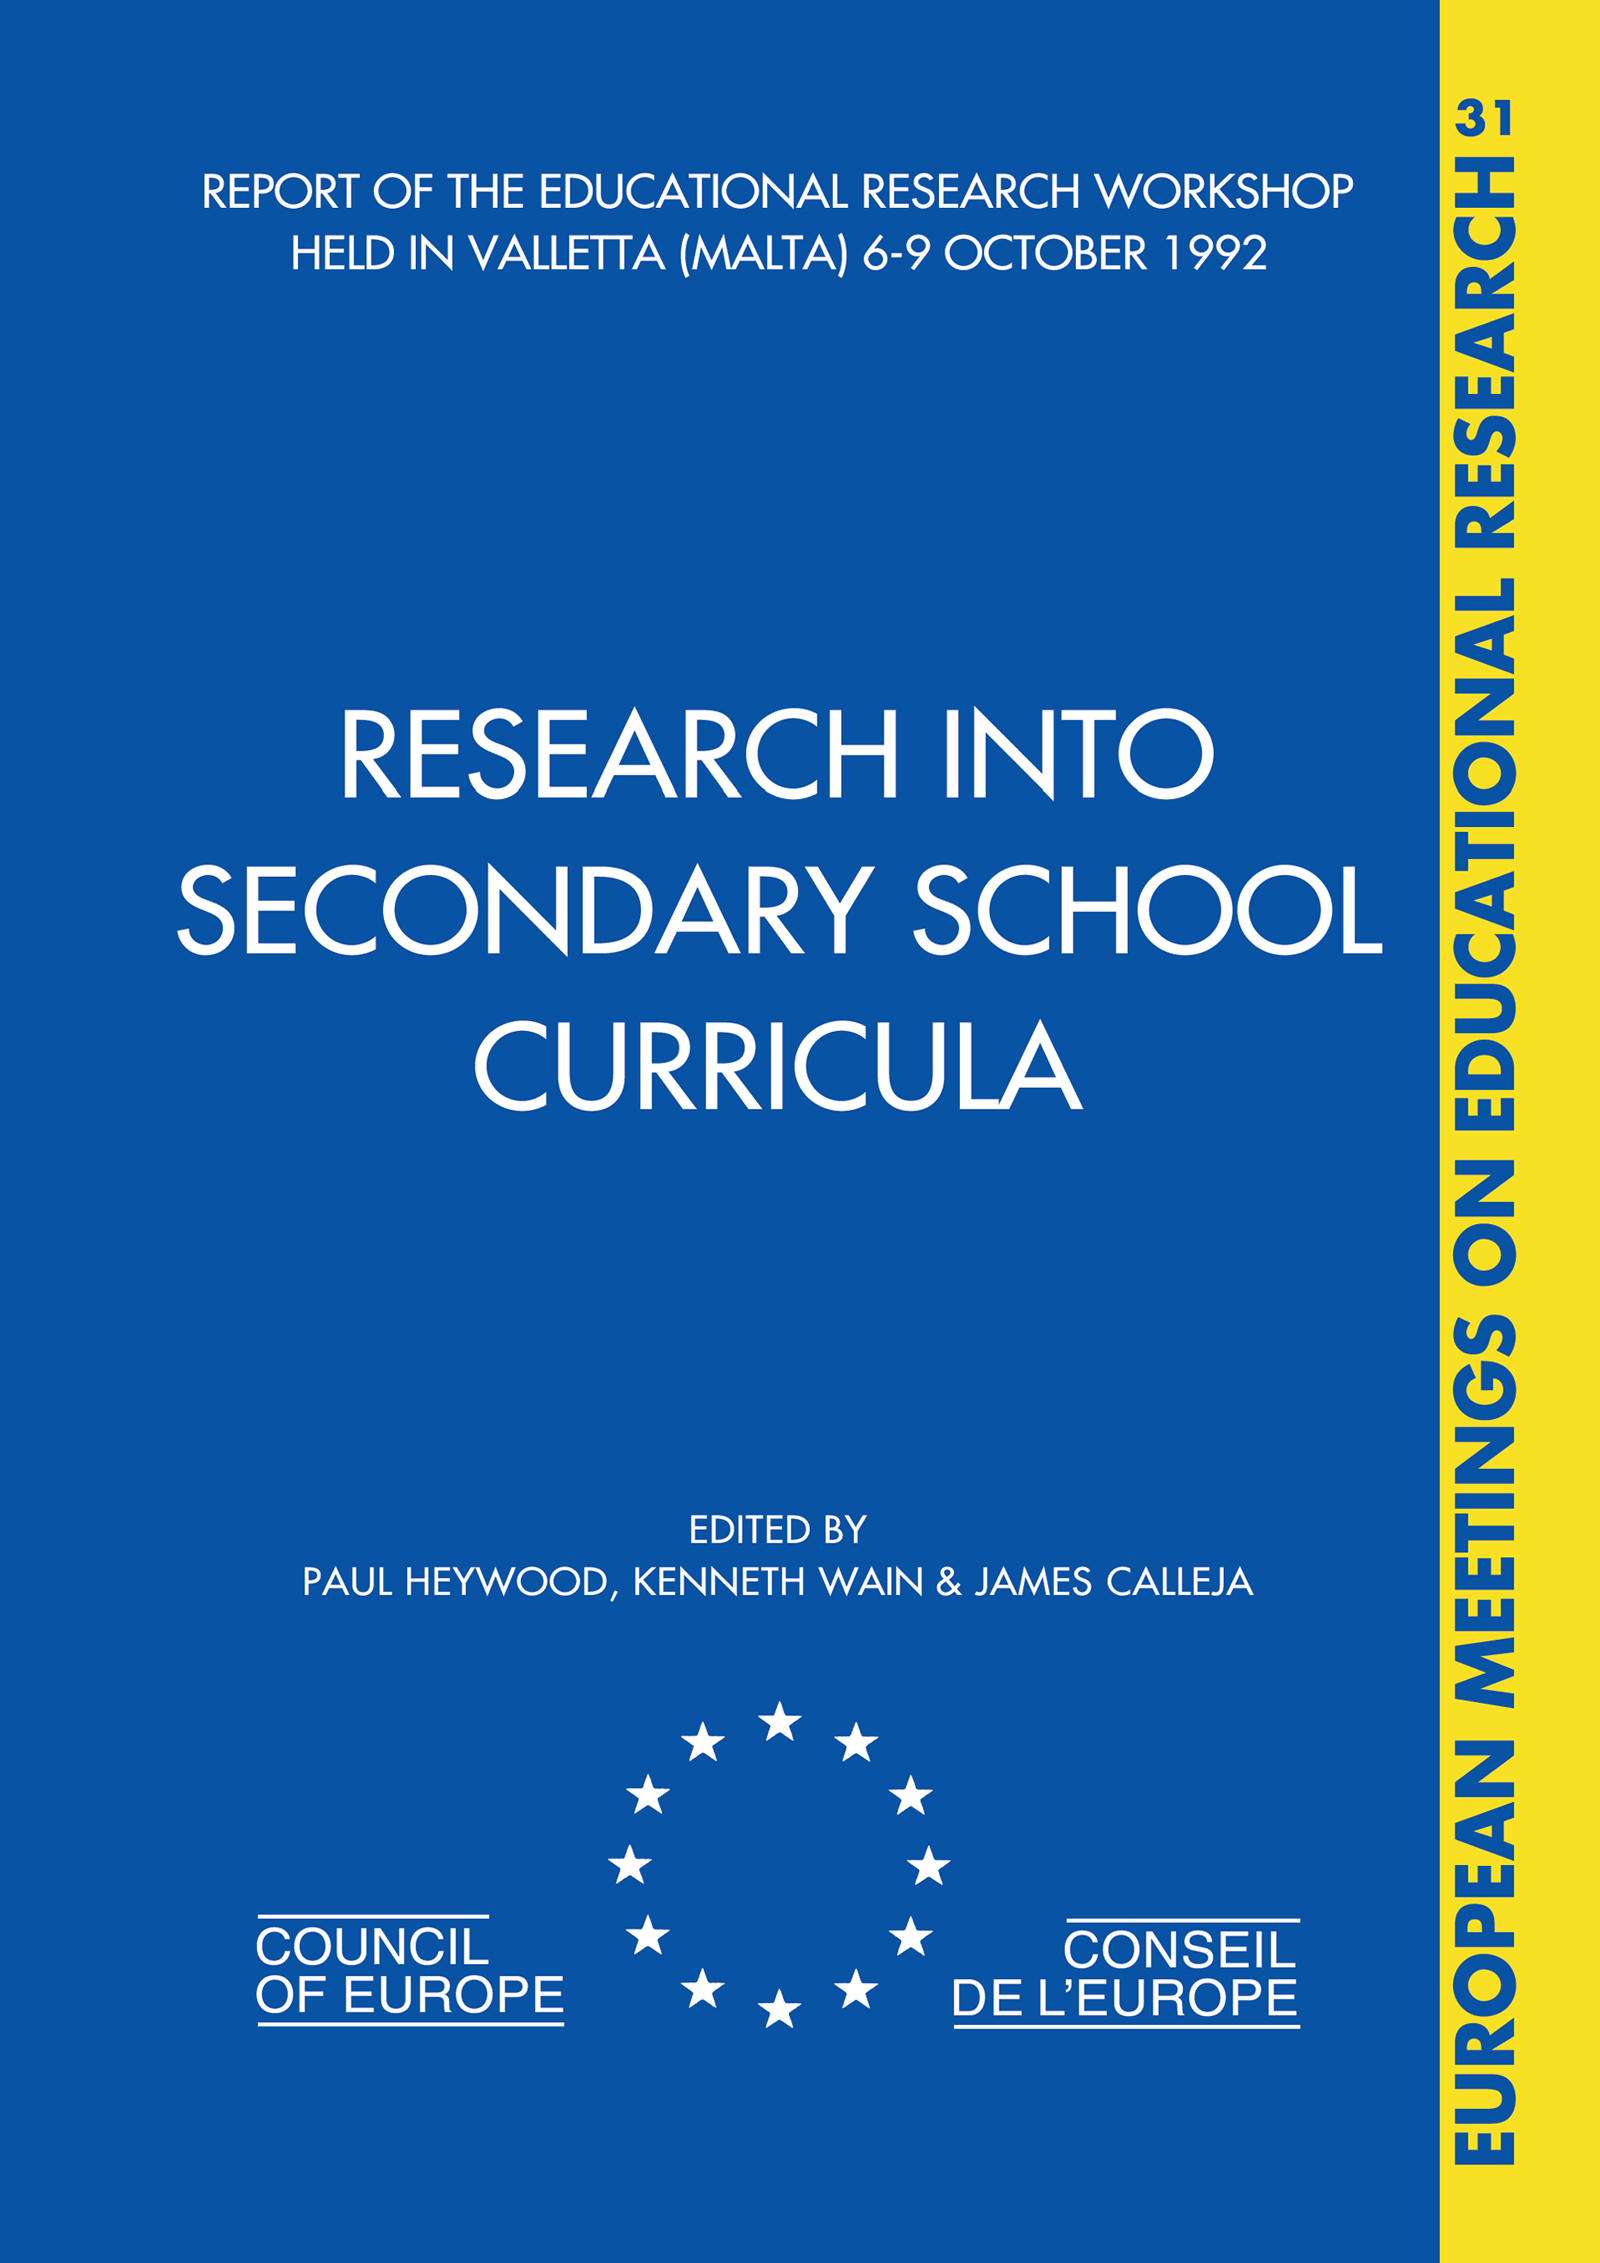 Research into Secondary School Curricula